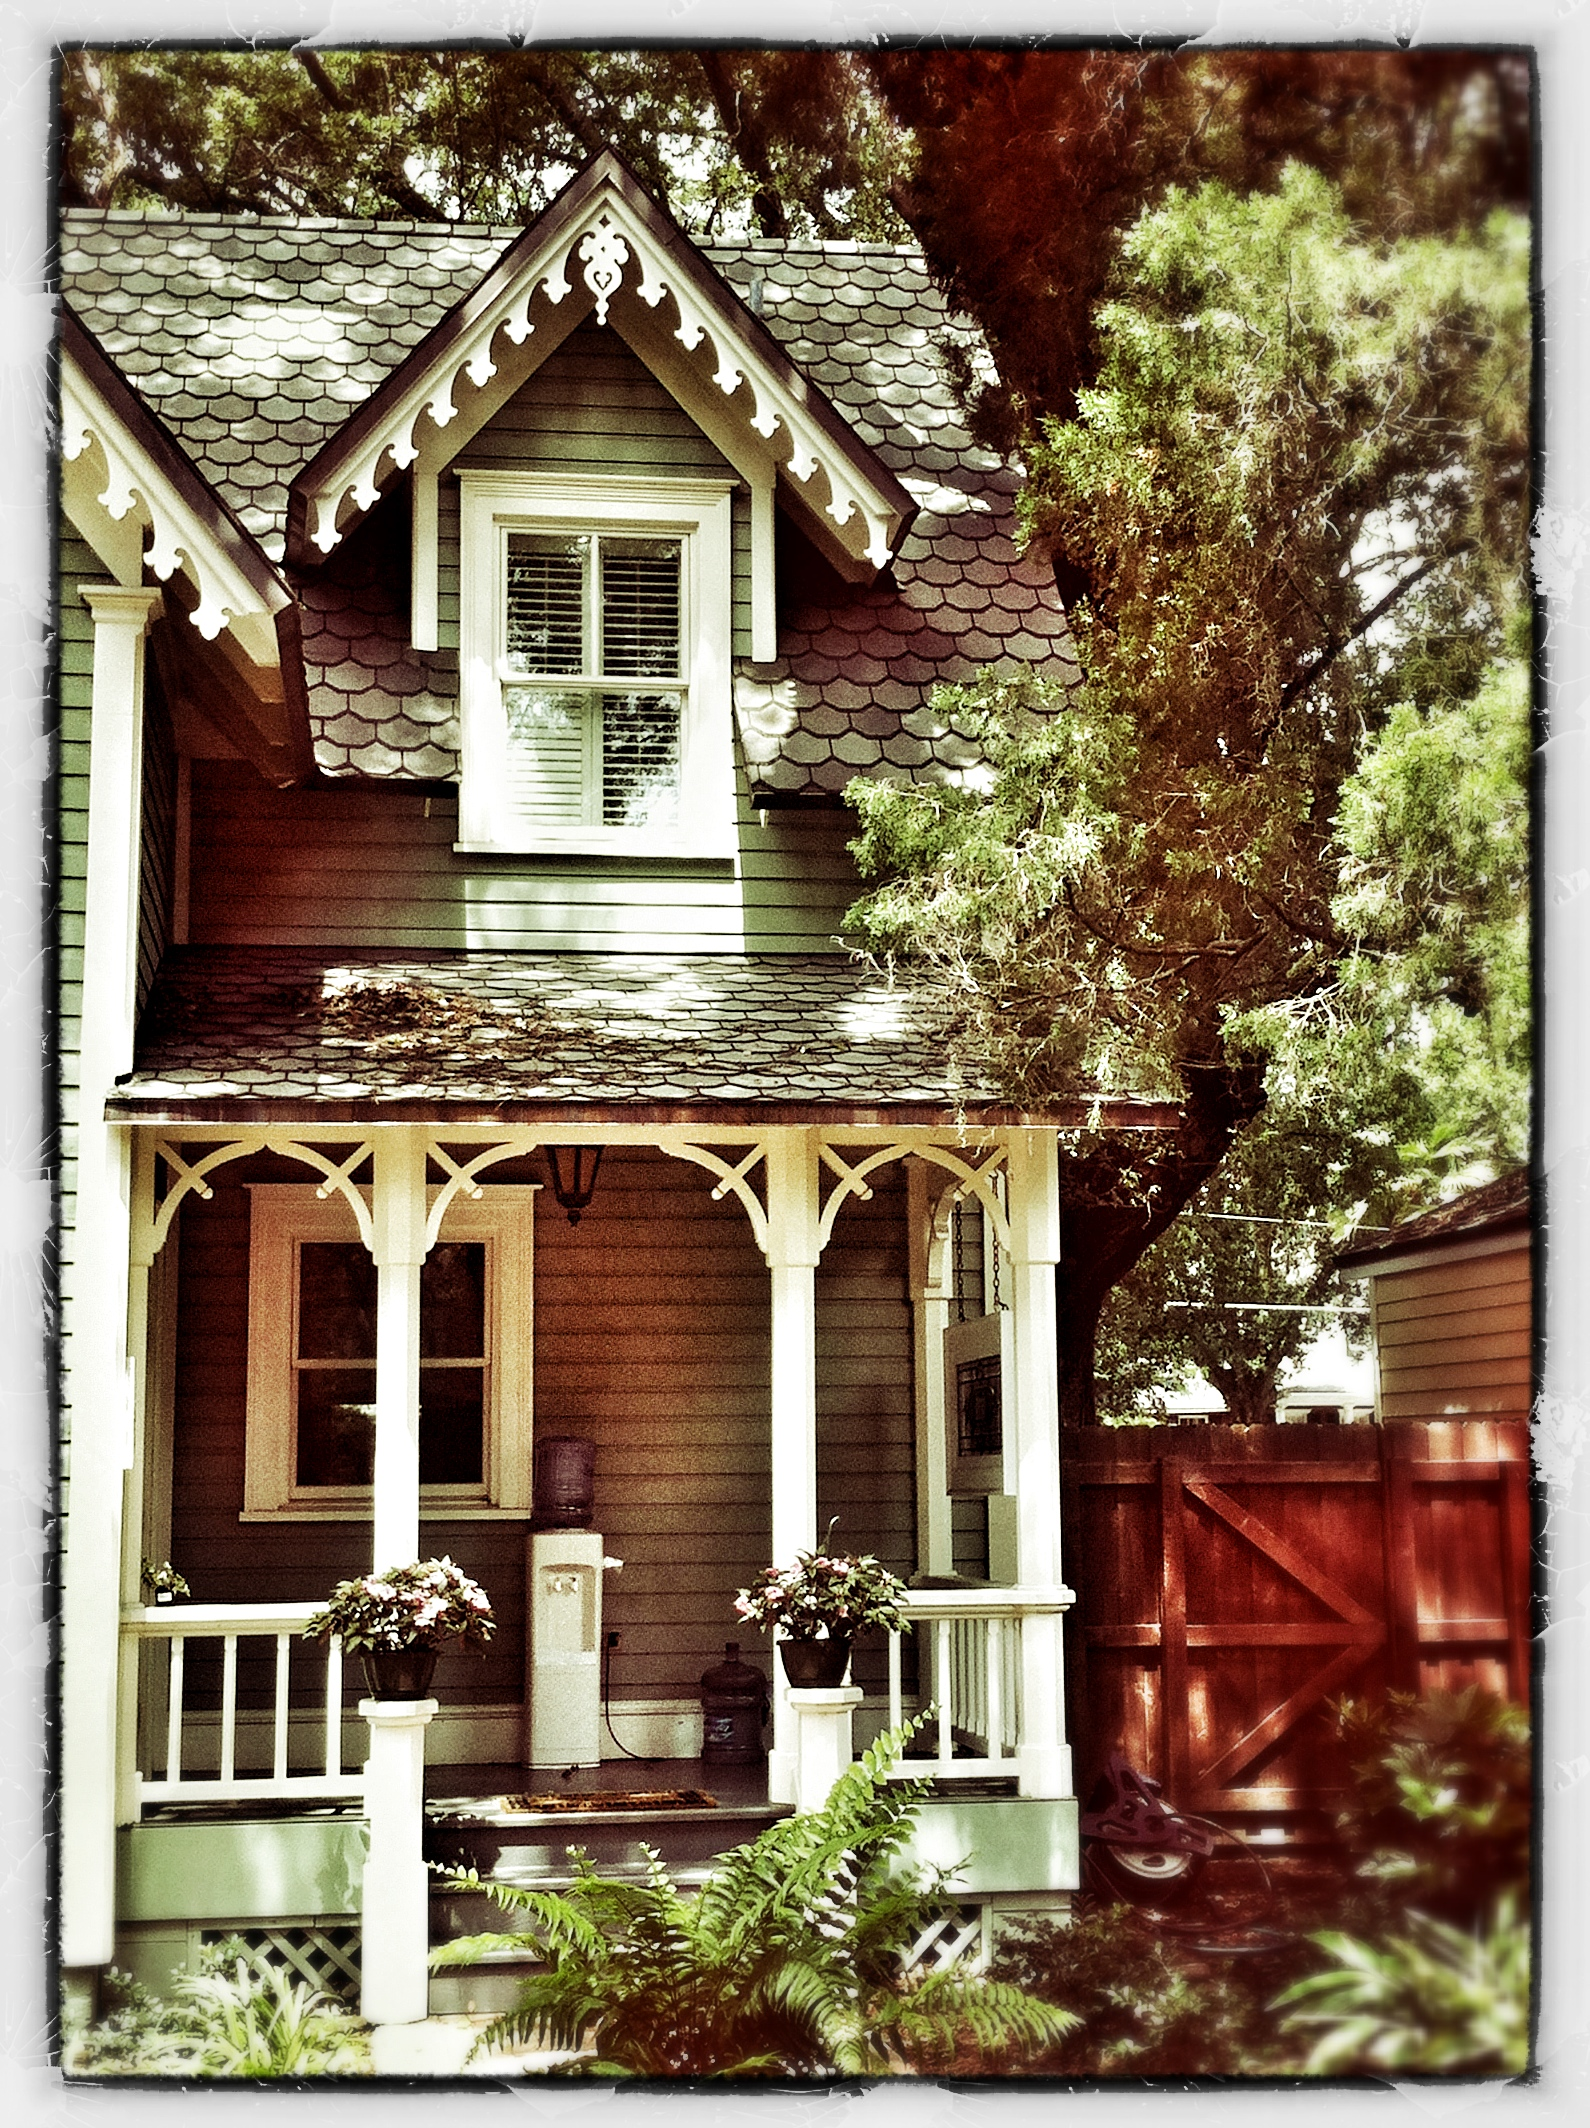 Why You Should Buy an Old House. By Scott Sidler. Historic House & The Historic House Guy | Historic Preservation For All